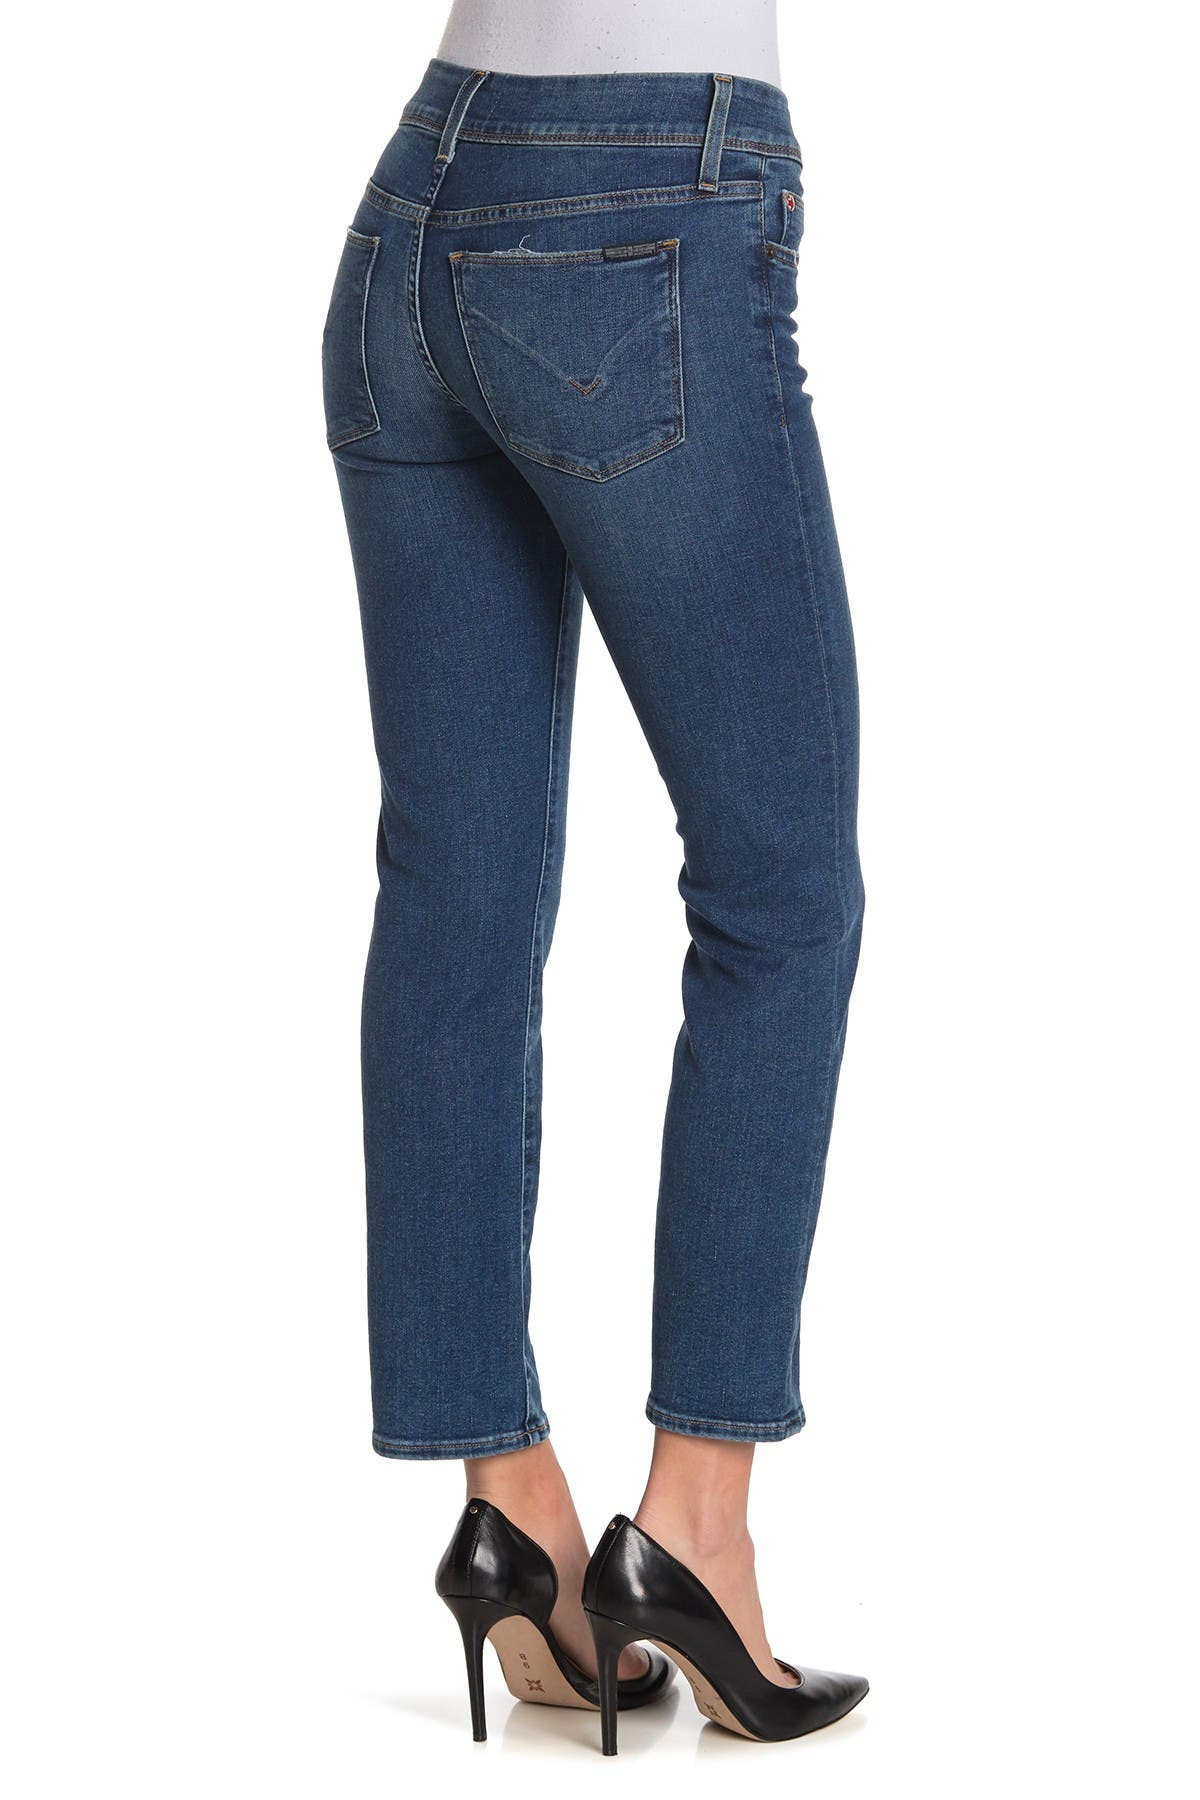 Image of HUDSON Jeans Ginny Ankle Crop Straight Jeans